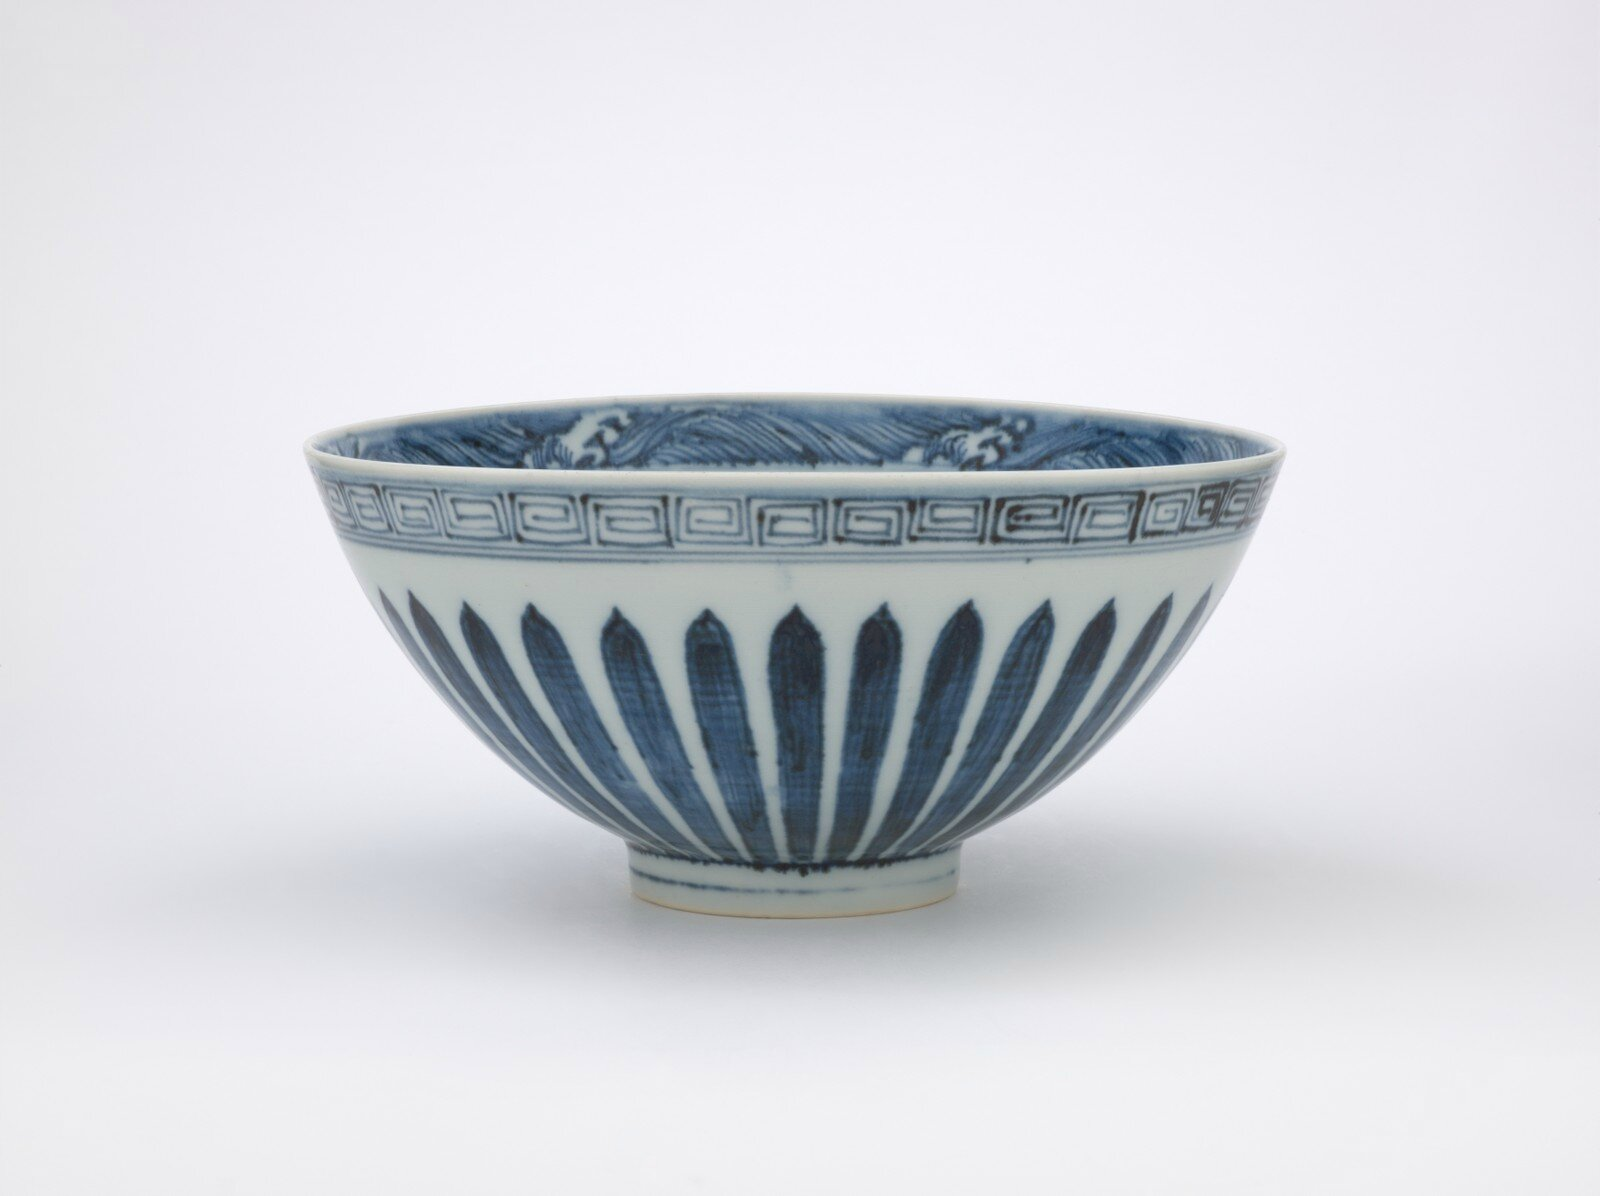 Bowl with loquat and floral designs, Ming dynasty, early 1400s, Yongle period, porcelain with underglaze blue, 4 x 8 1/4 (diam.) in. Gift of Mr. and Mrs. Eli Lilly. 60.107. Indianapolis Museum of Art © 2014 IMA